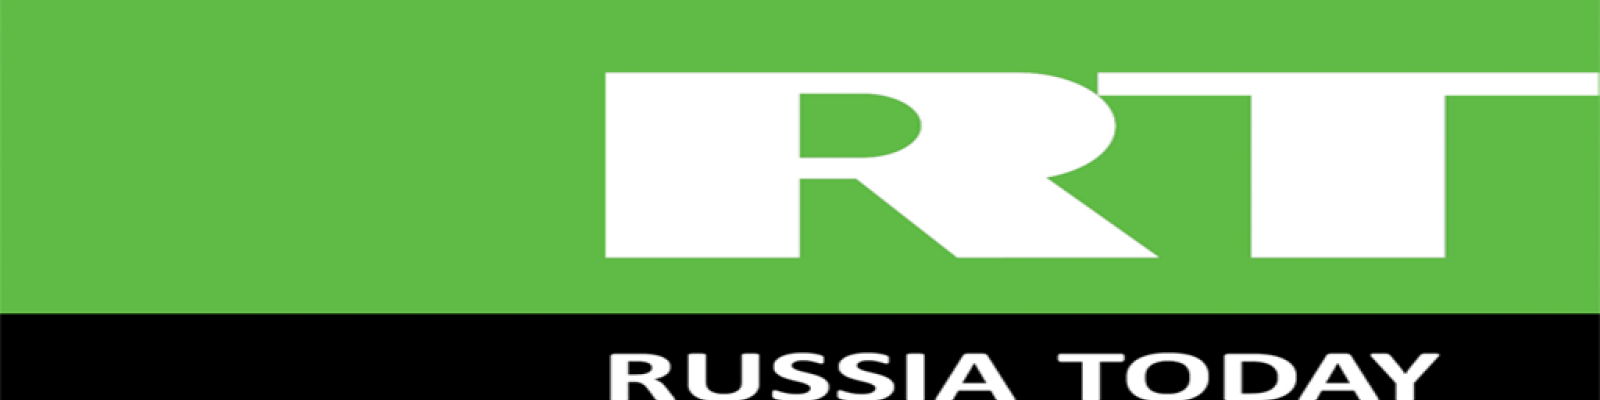 Andrew Nagorski on Russia Today about Polish-Russian relations